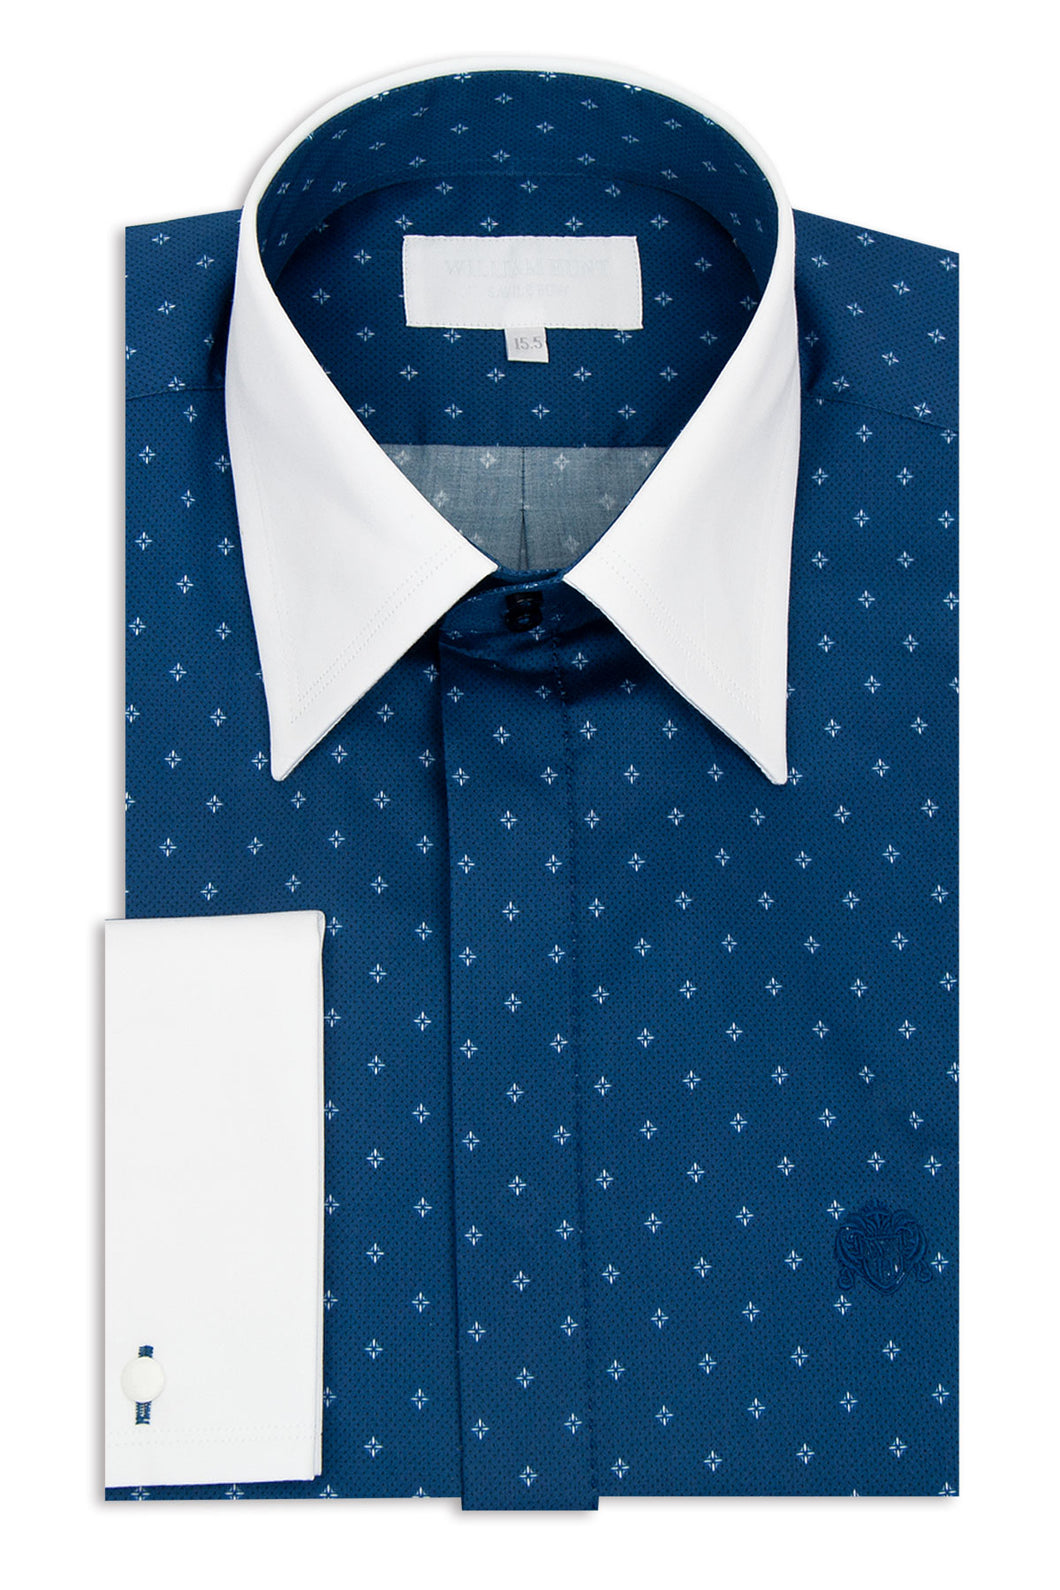 Blue Forward Point Collar Shirt with White Pattern